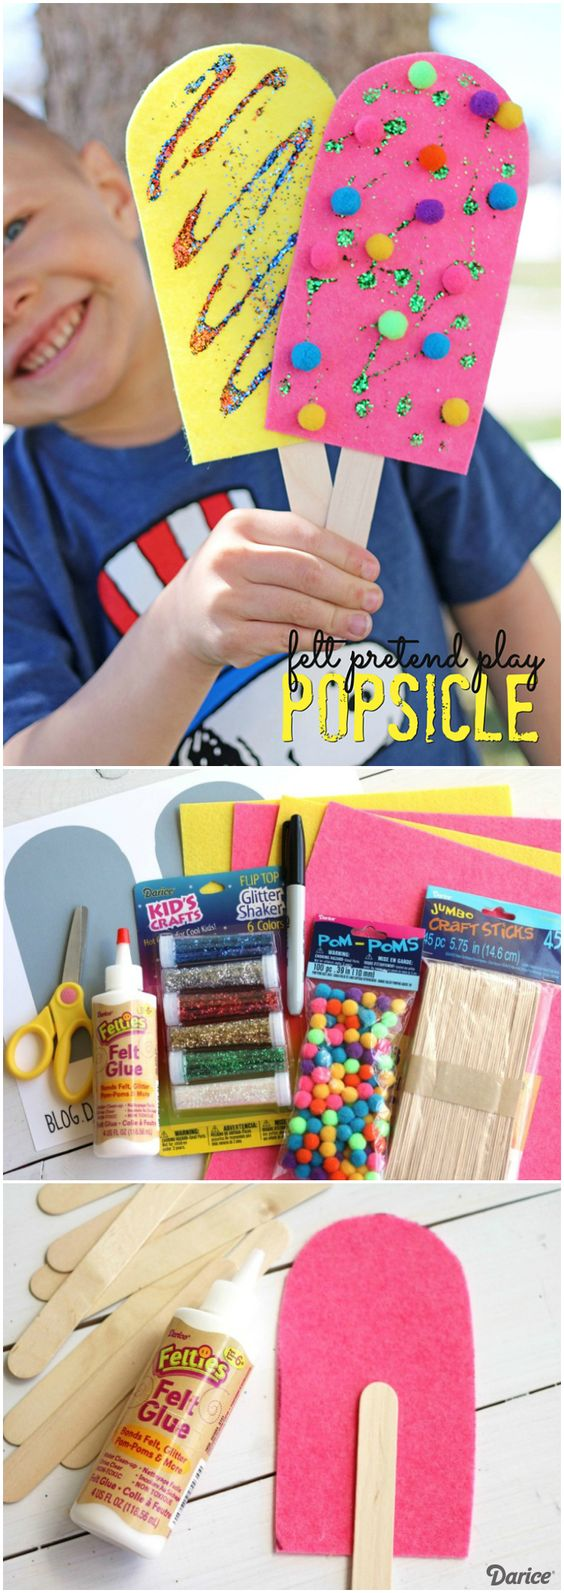 This pretend play felt popsicle craft is a fun summer themed craft idea that is not only calorie free and fun for all ages but it's also super simple!: